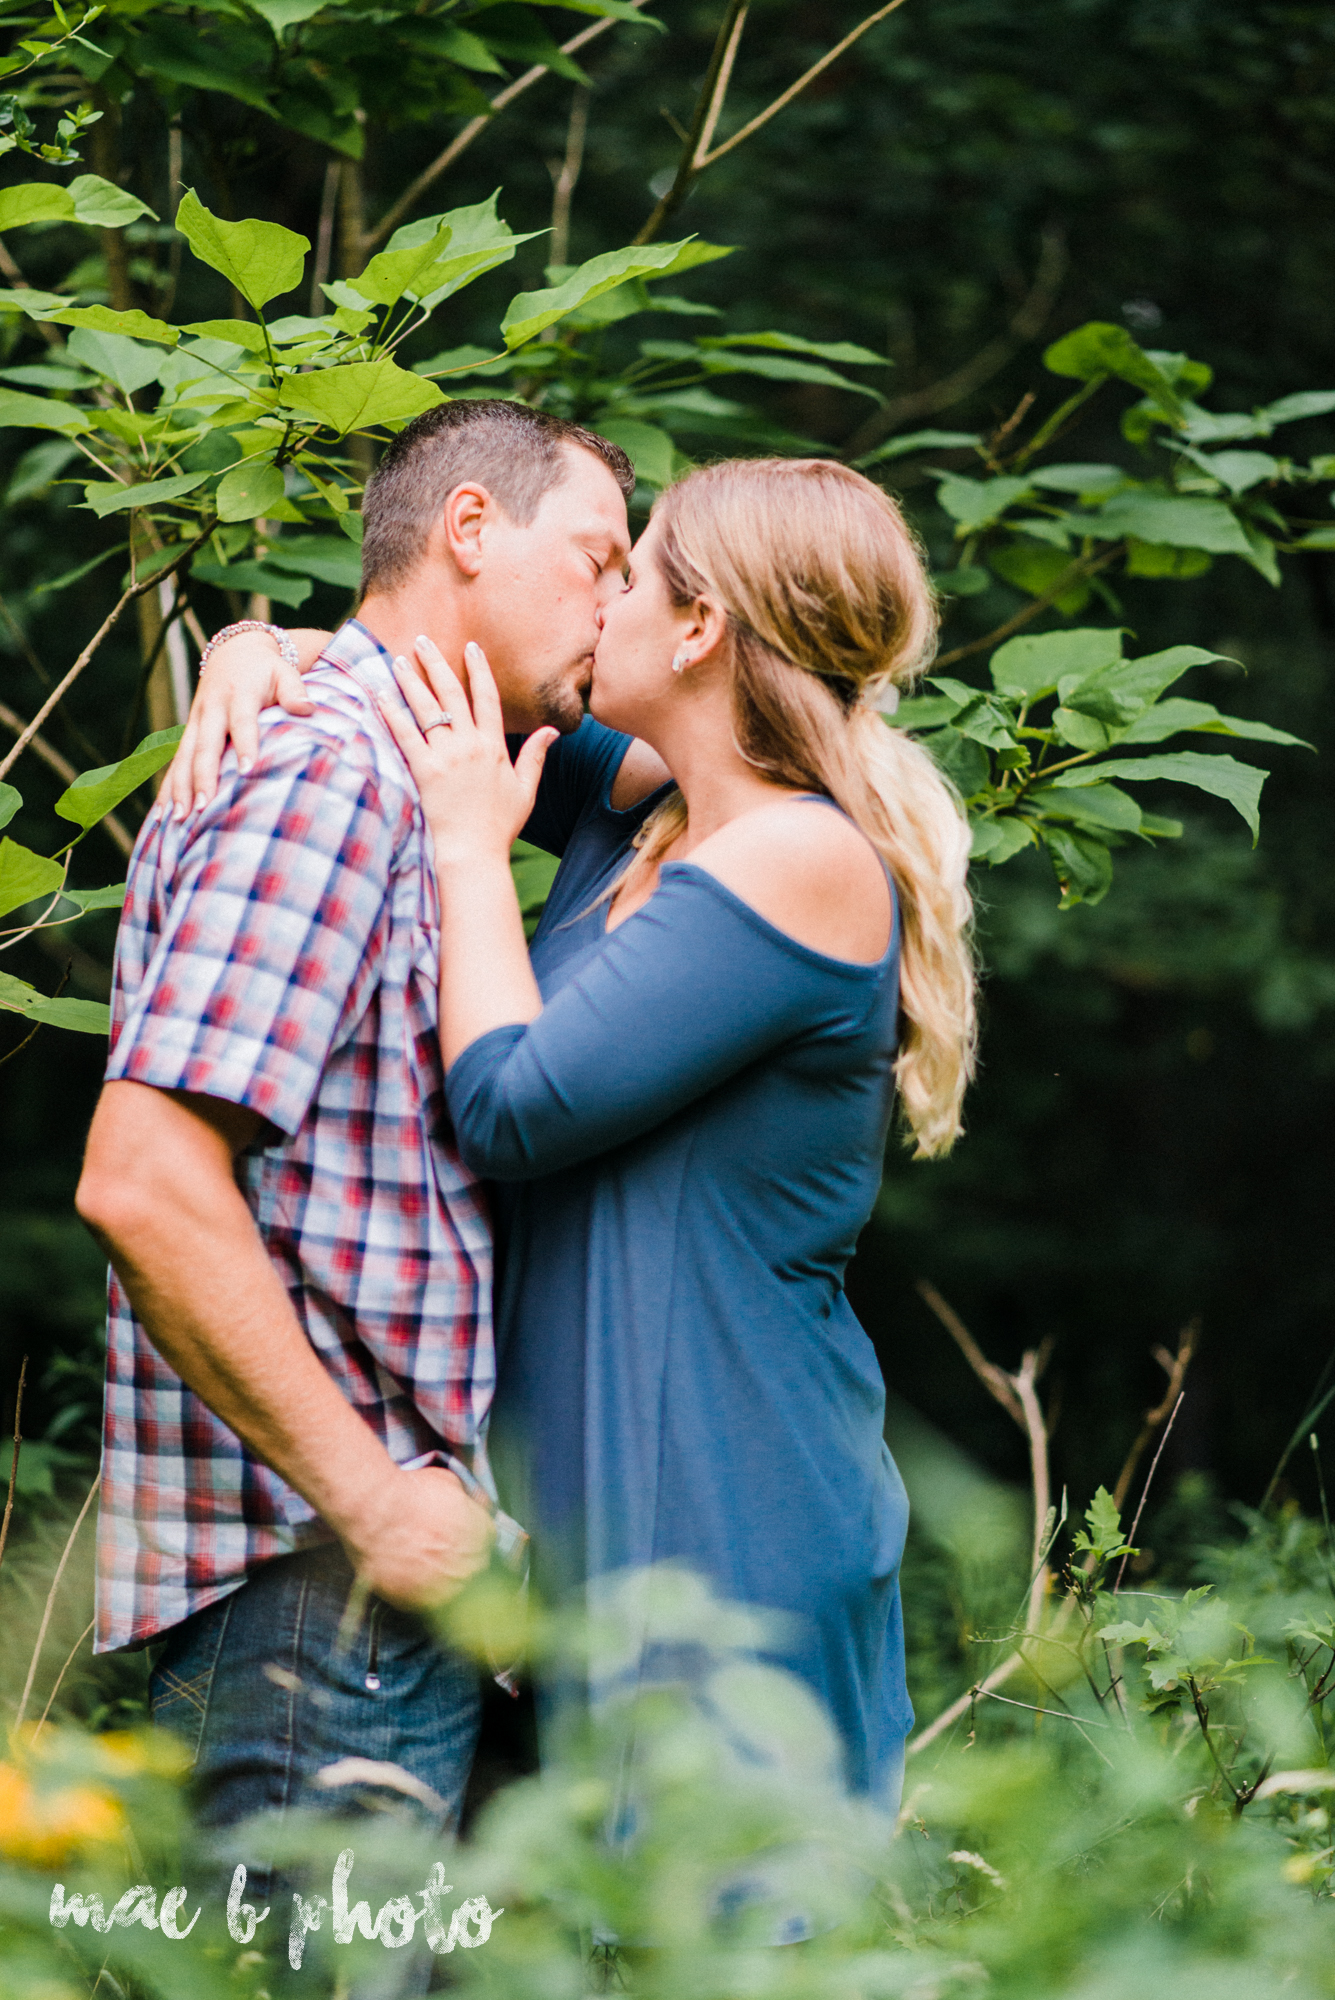 becca and rich's woodsy summer engagement session at ford nature center in mill creek park in youngstown ohio photographed by cleveland wedding photographer mae b photo-51.jpg